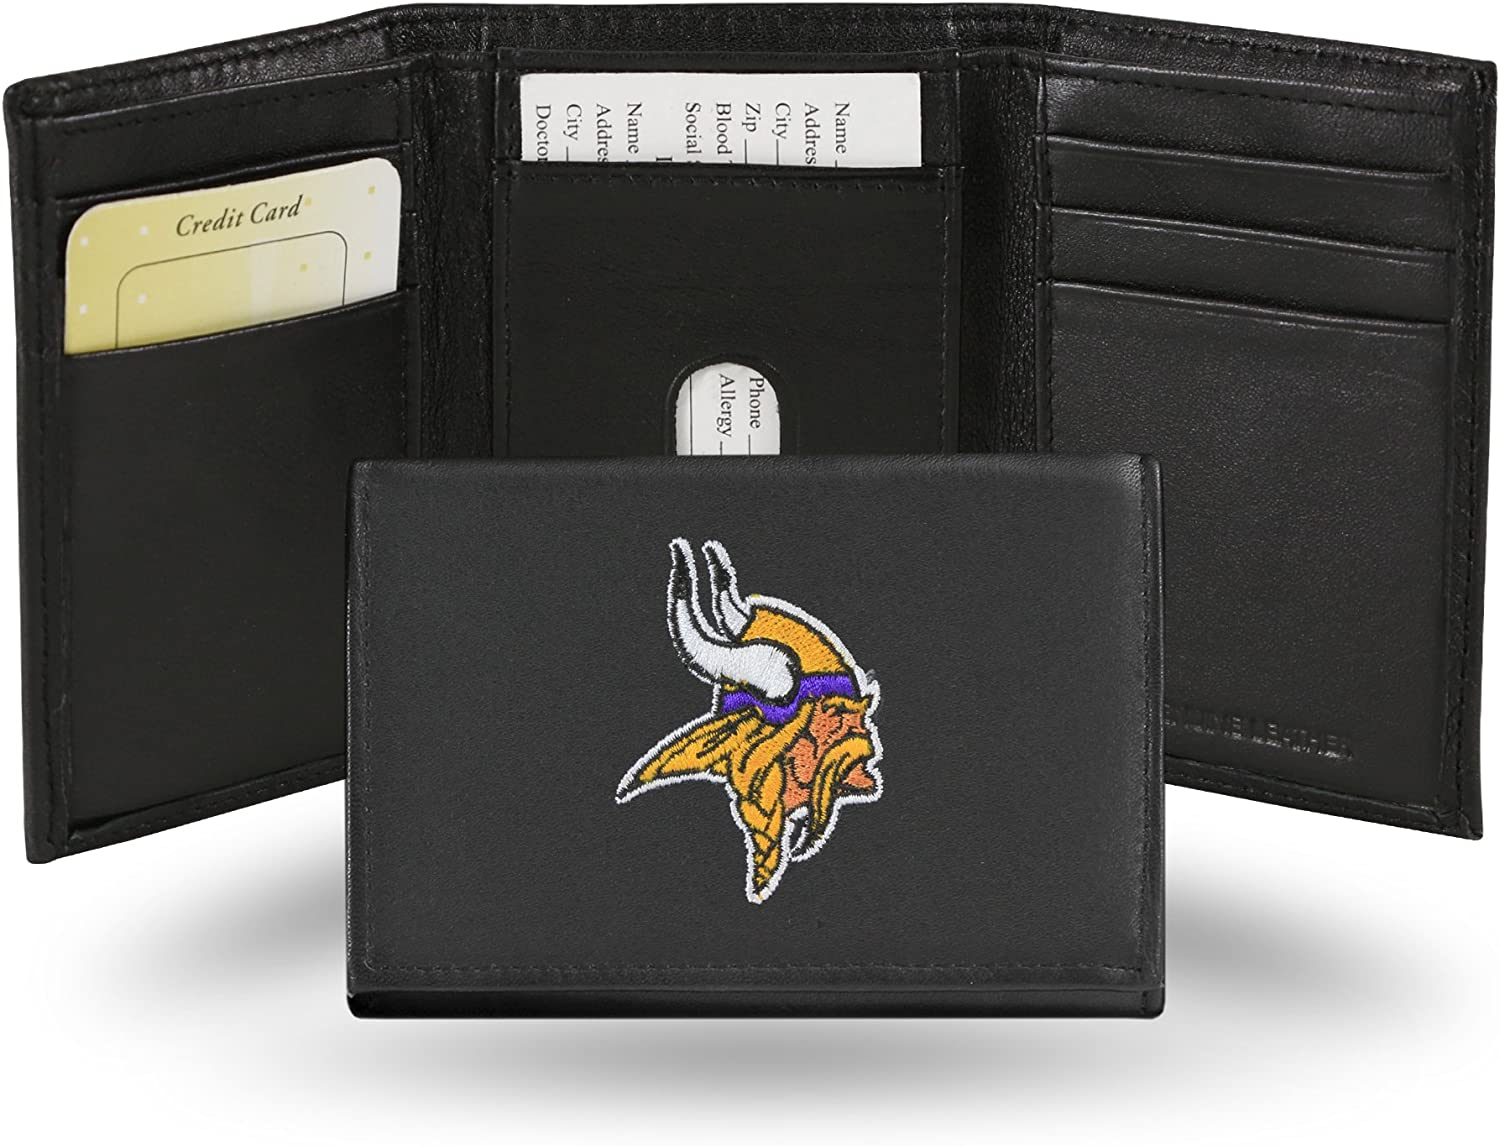 Minnesota Vikings Licensed Embroidered Leather Trifold Wallet NEW in Gift Tin